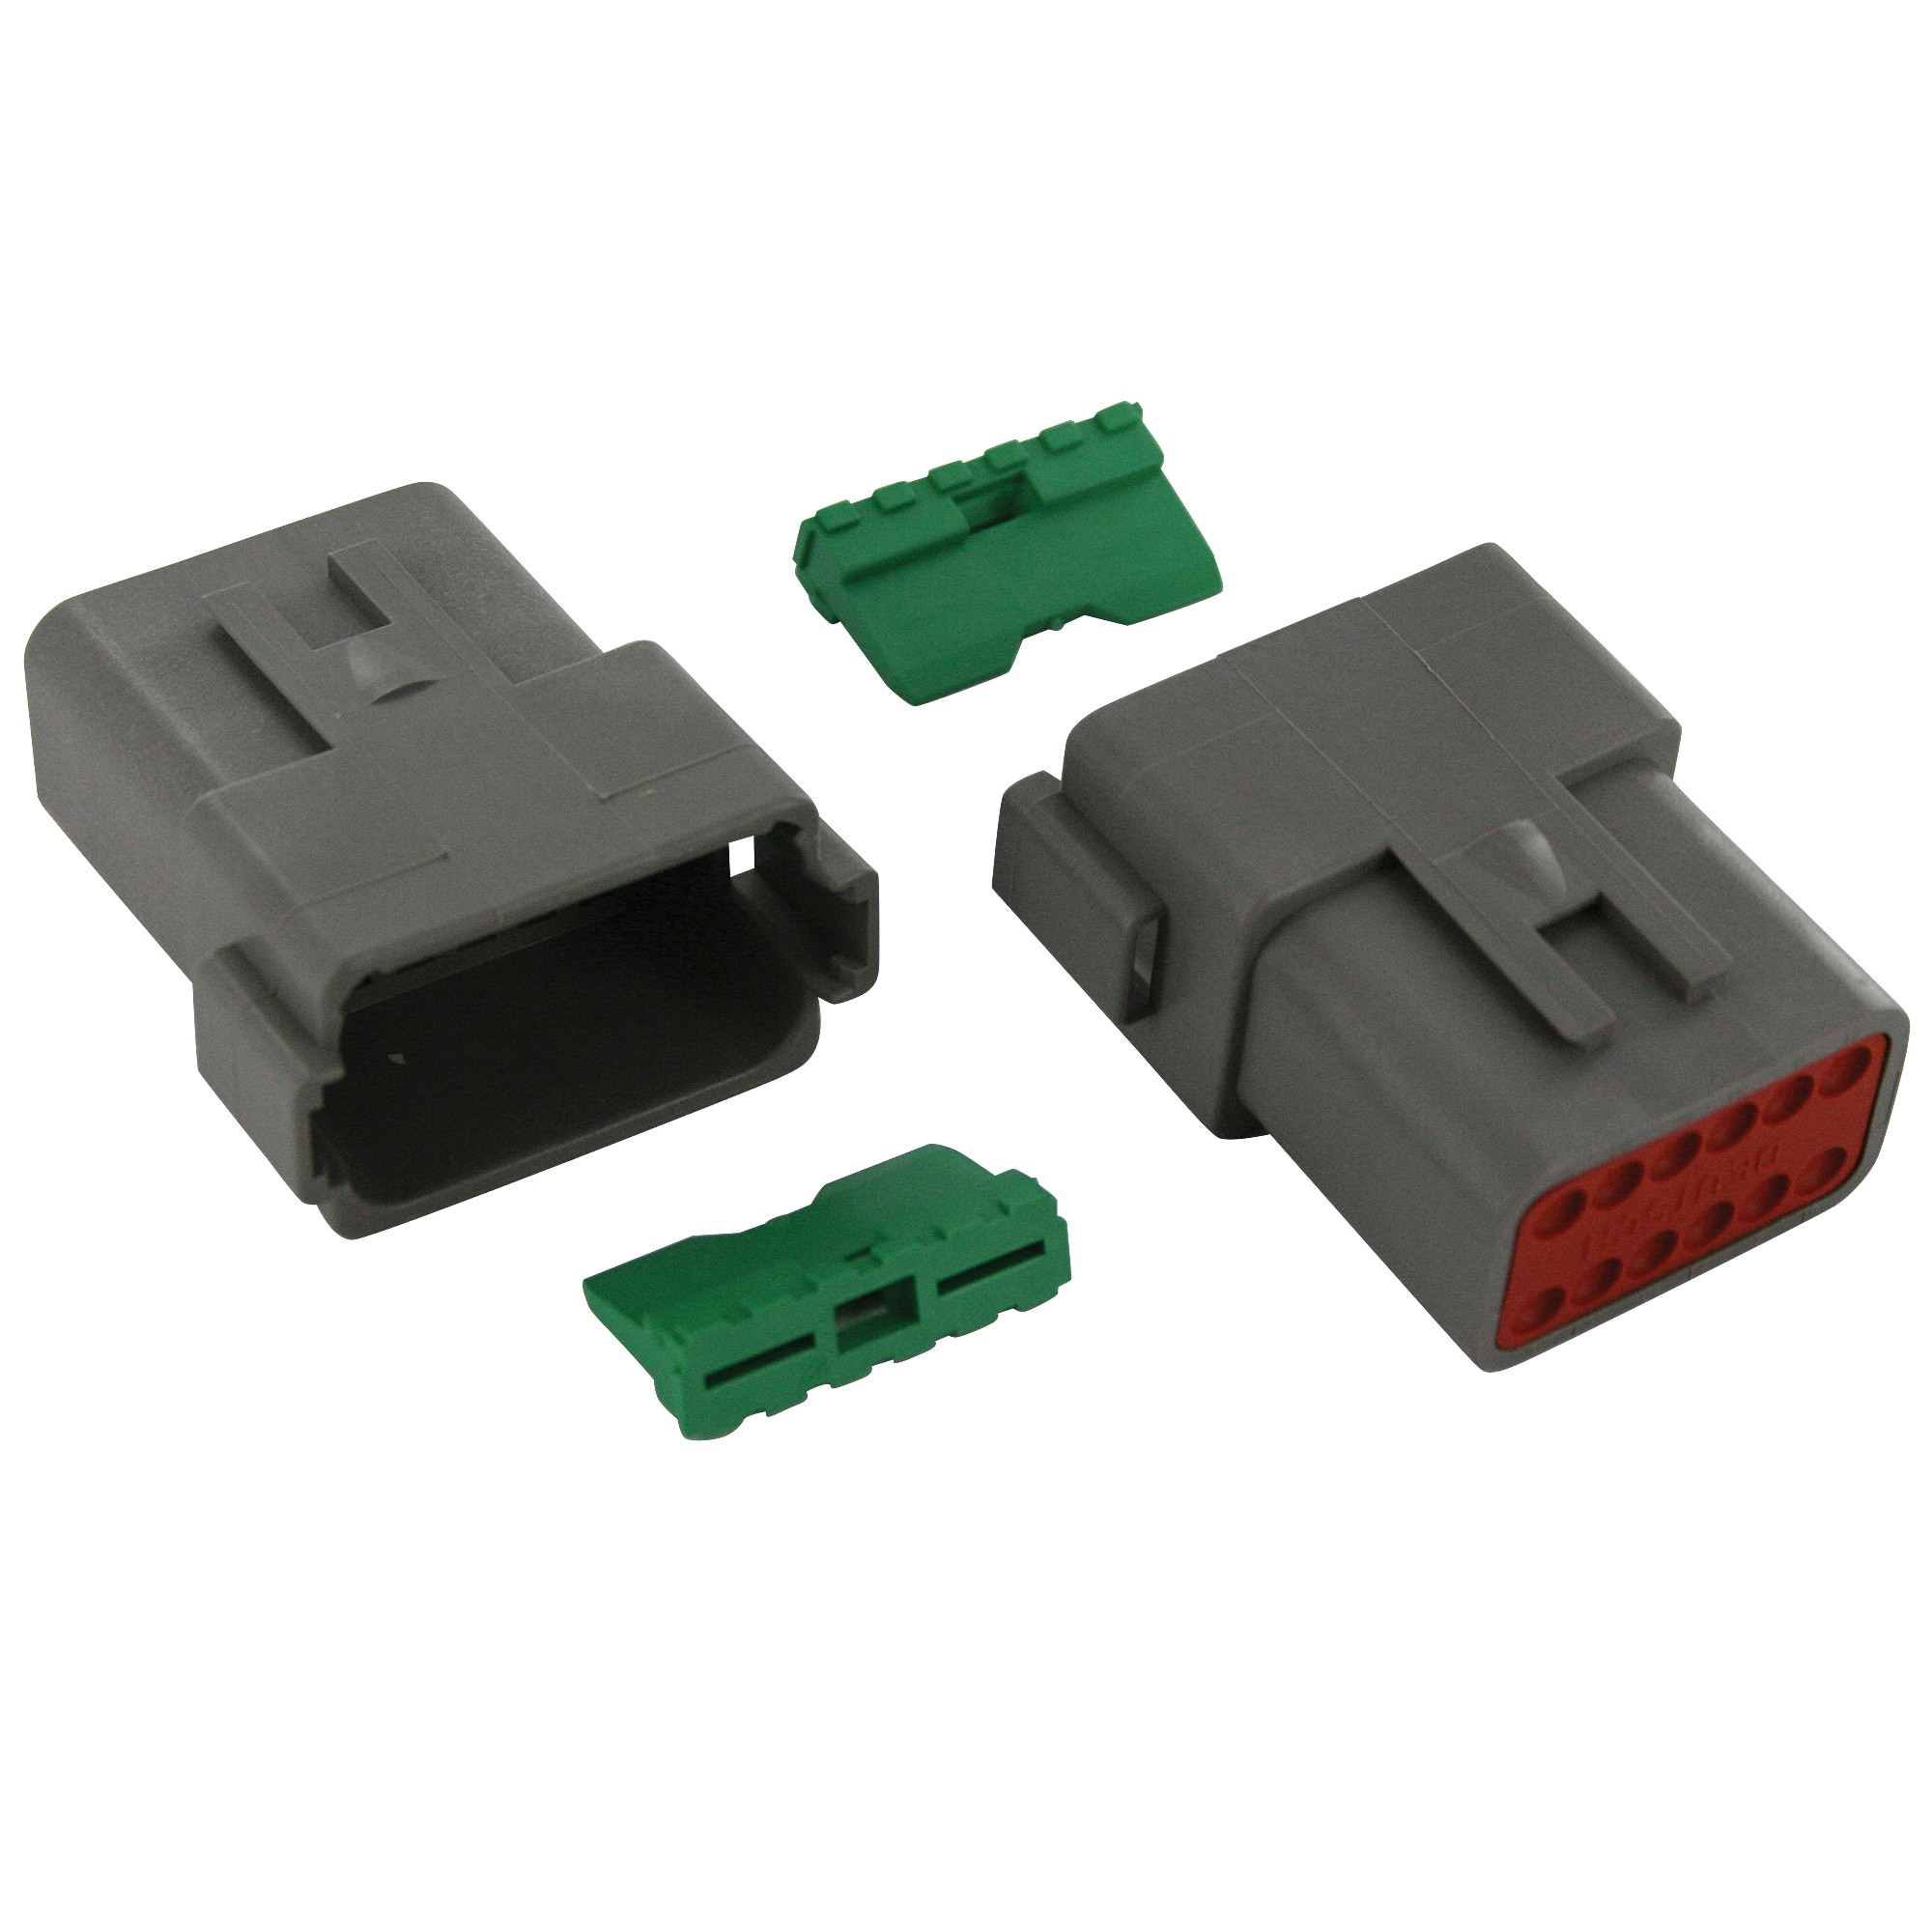 Dt Series 12 Way Deutsch Dt04 12p W12p Hg Wl 1 Set Elecdirect Wiring Connectors